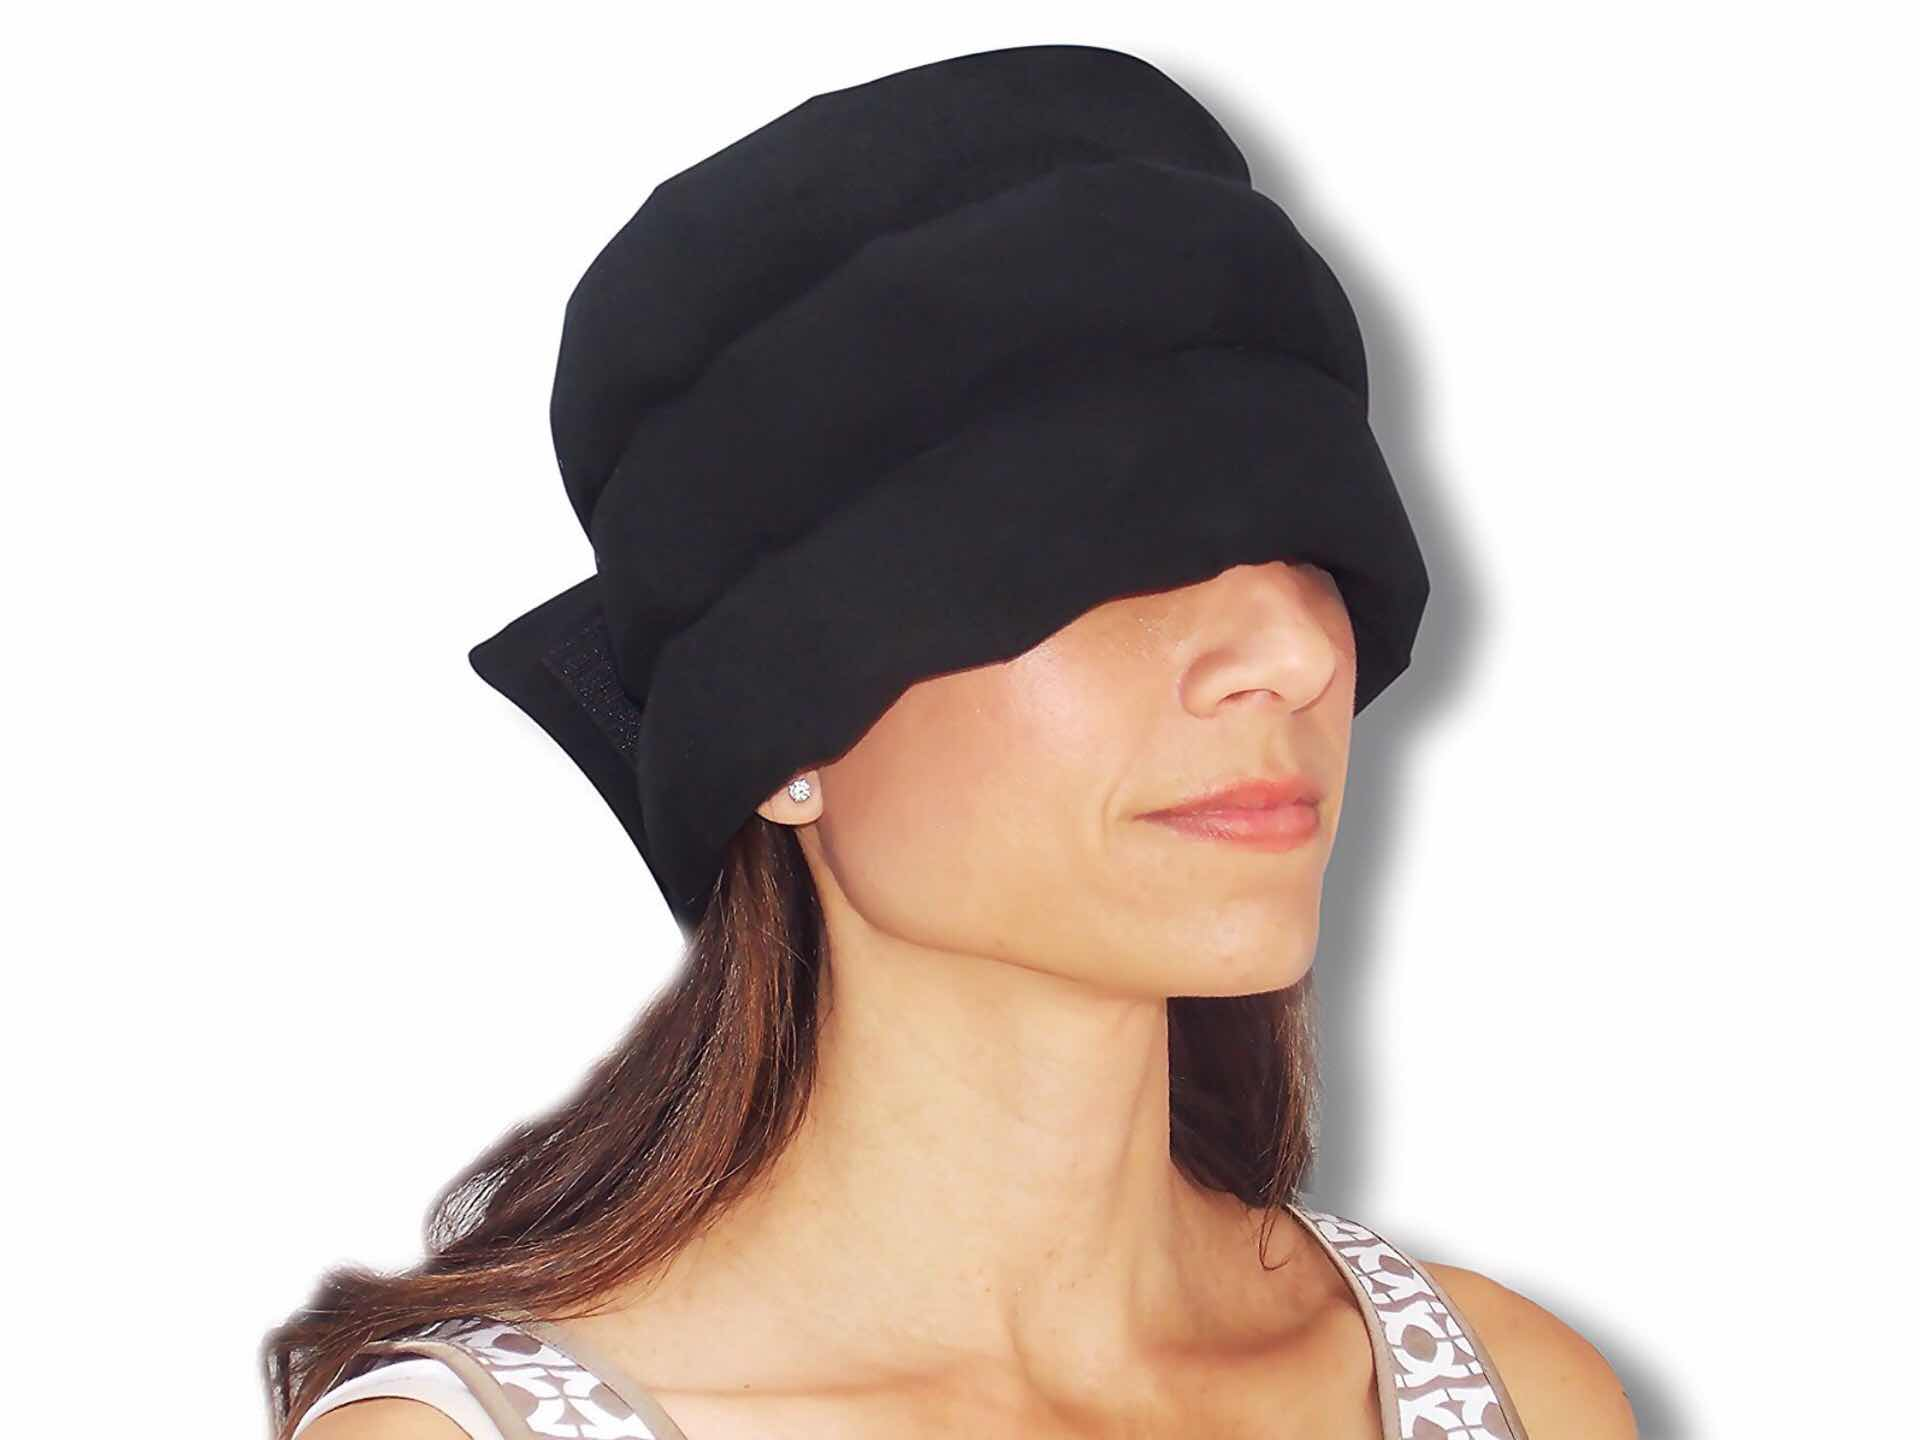 the-original-headache-hat